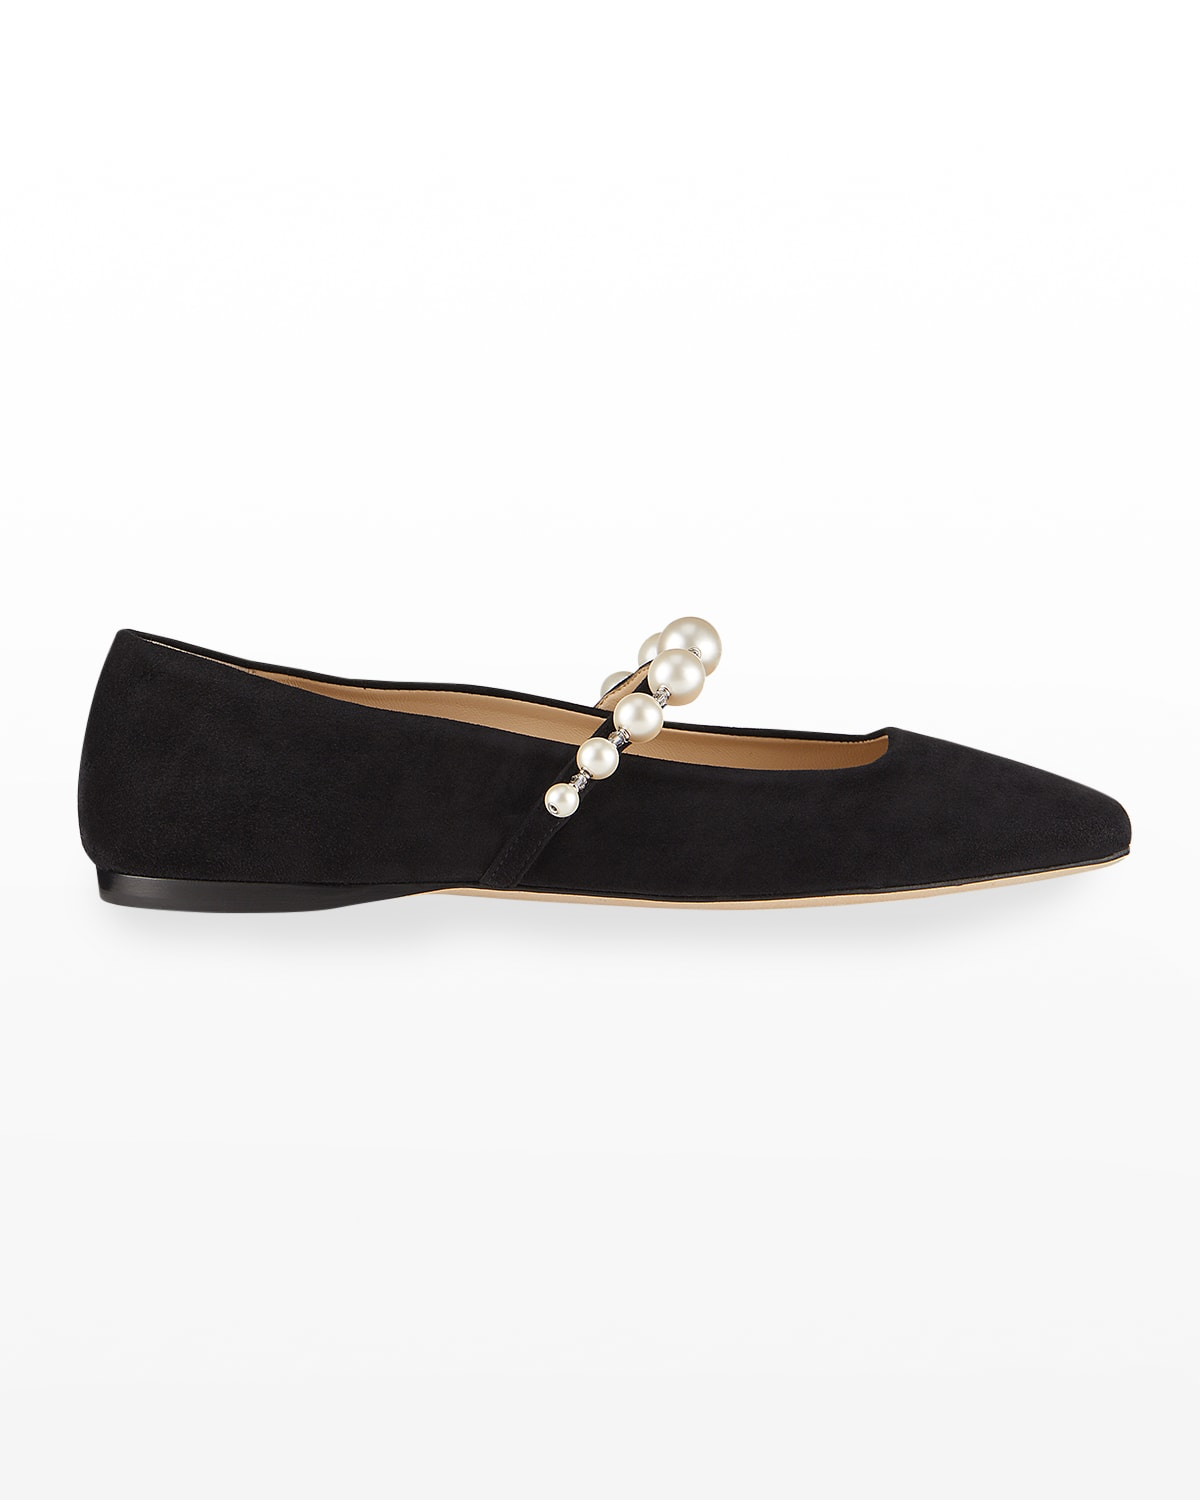 Ade Suede Pearly-Stud Mary Jane Ballerina Flats